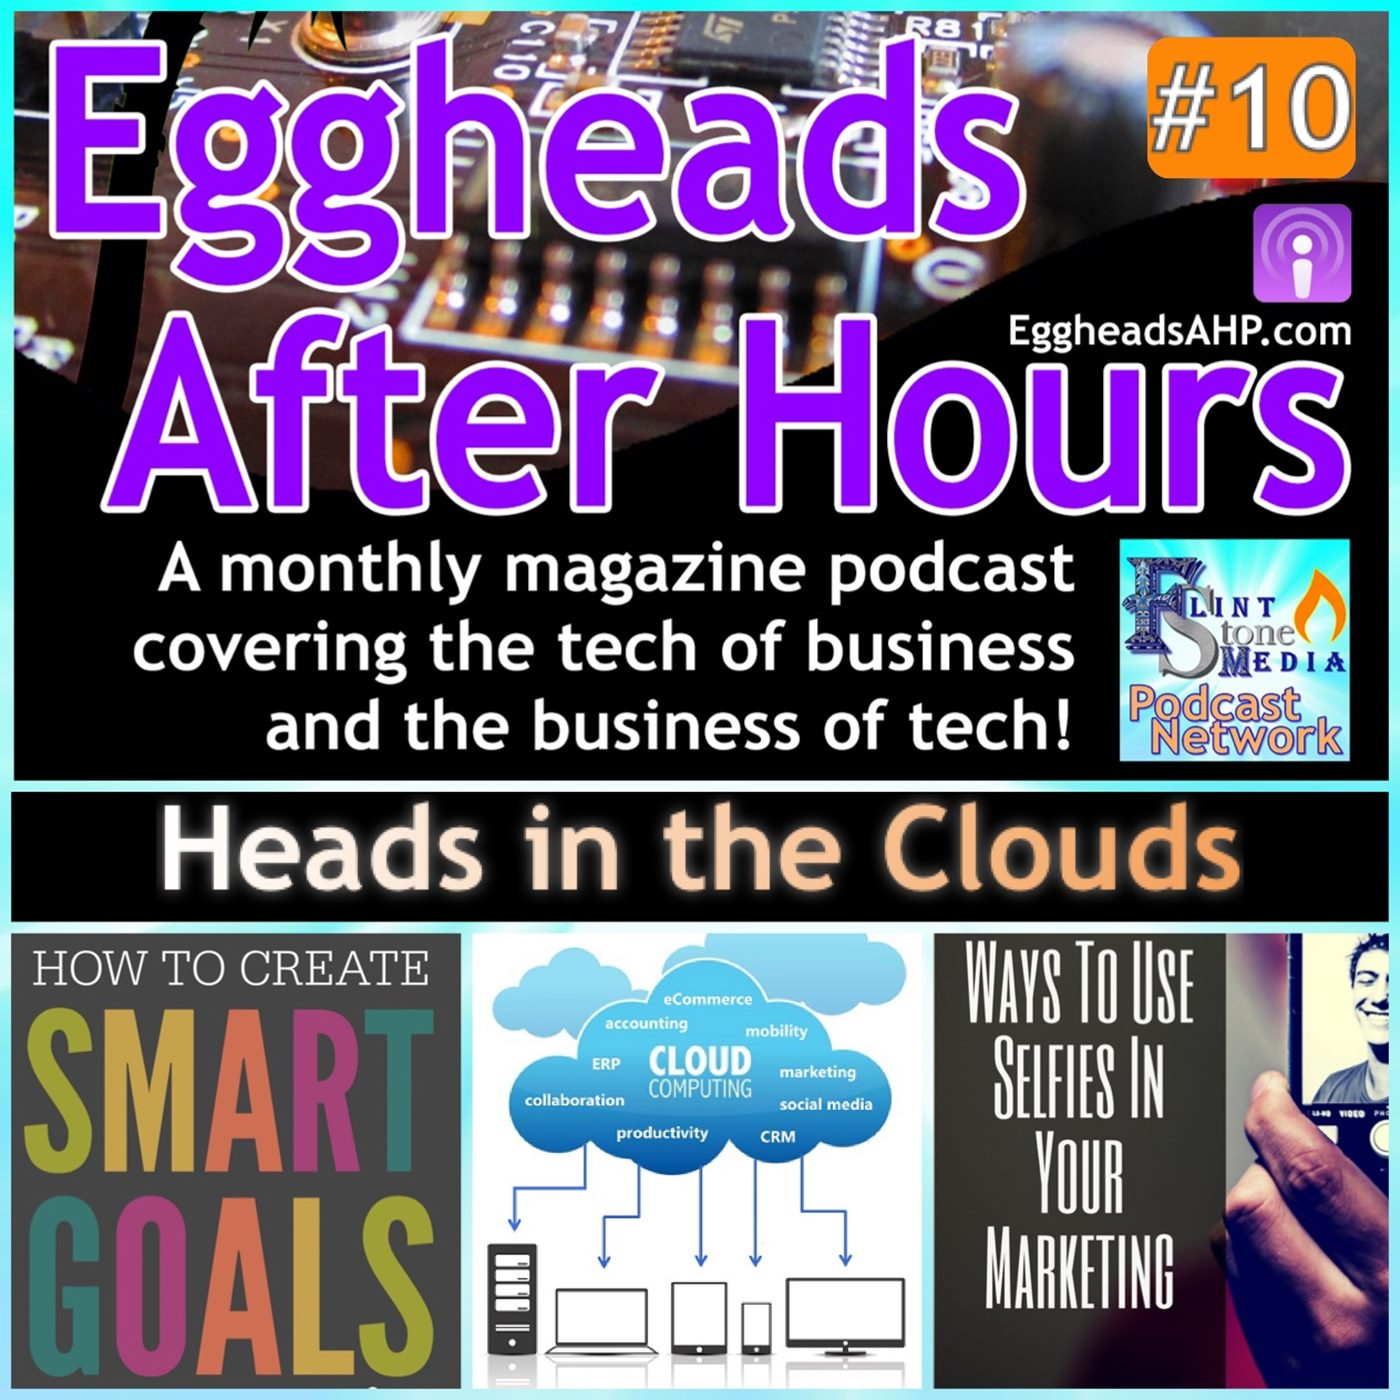 Eggheads After Hours Podcast - Episode 10 - Heads in the Clouds